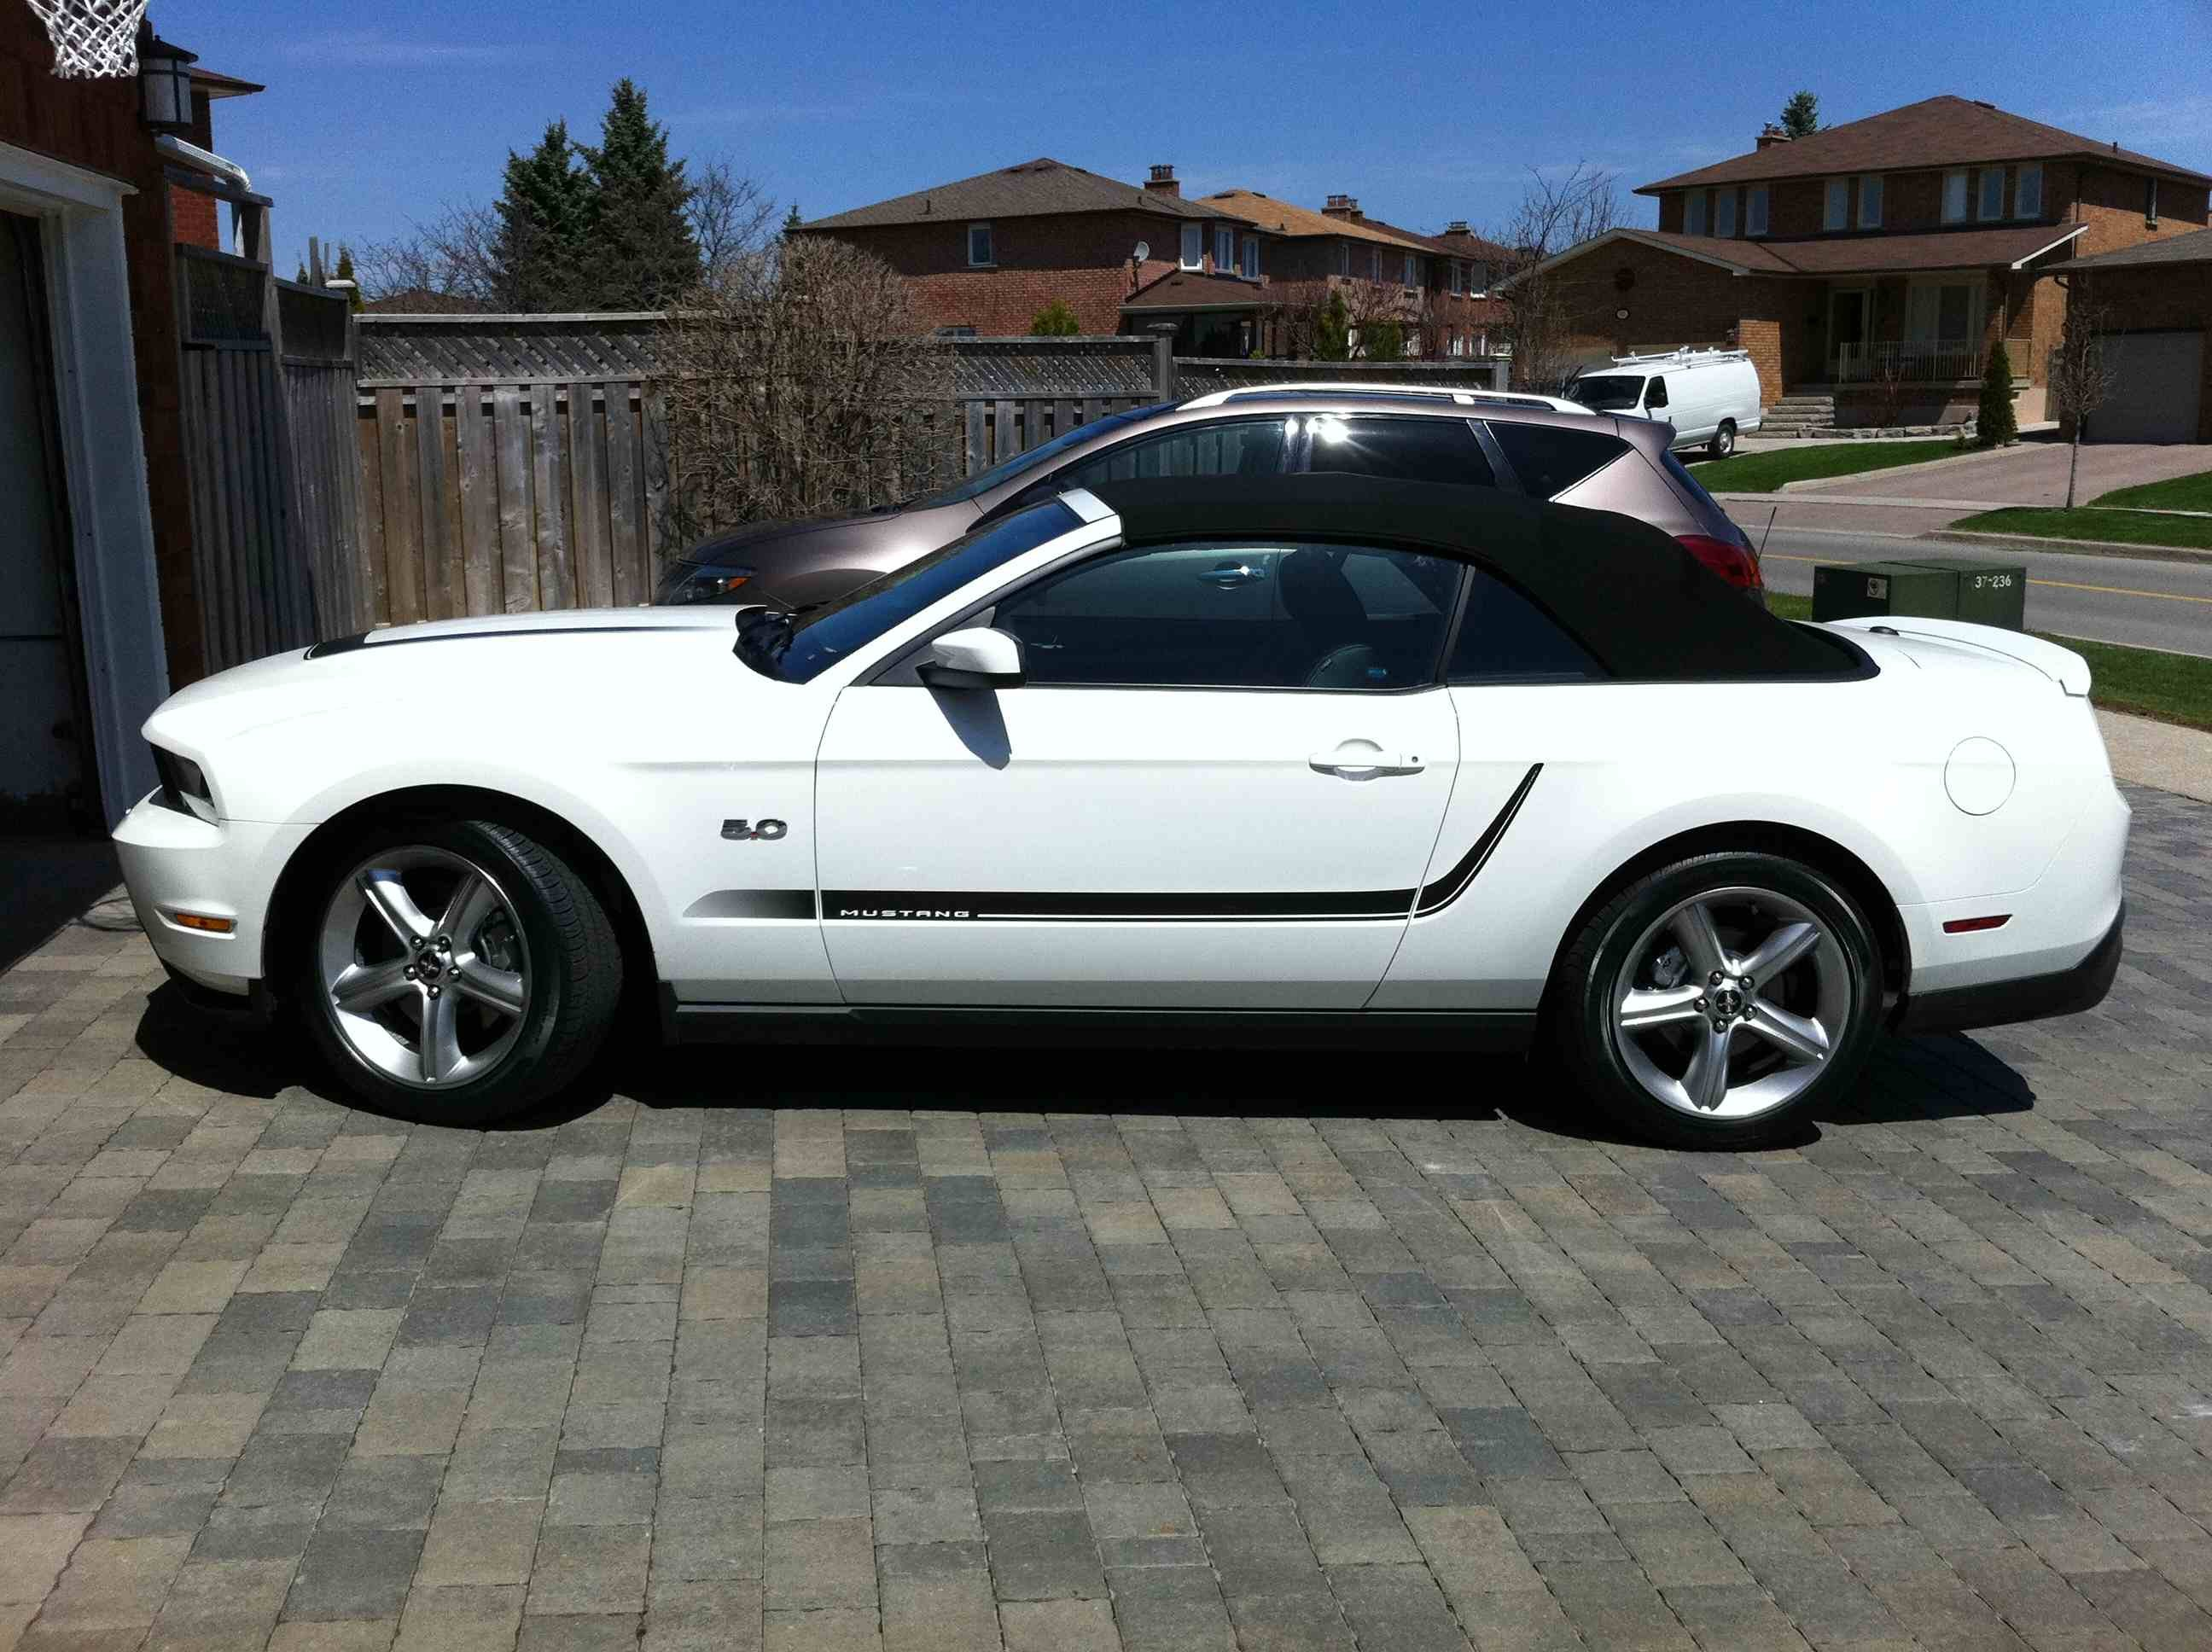 2012 mustang gt performance white w stripes ford mustang forum - Mustang 2012 White